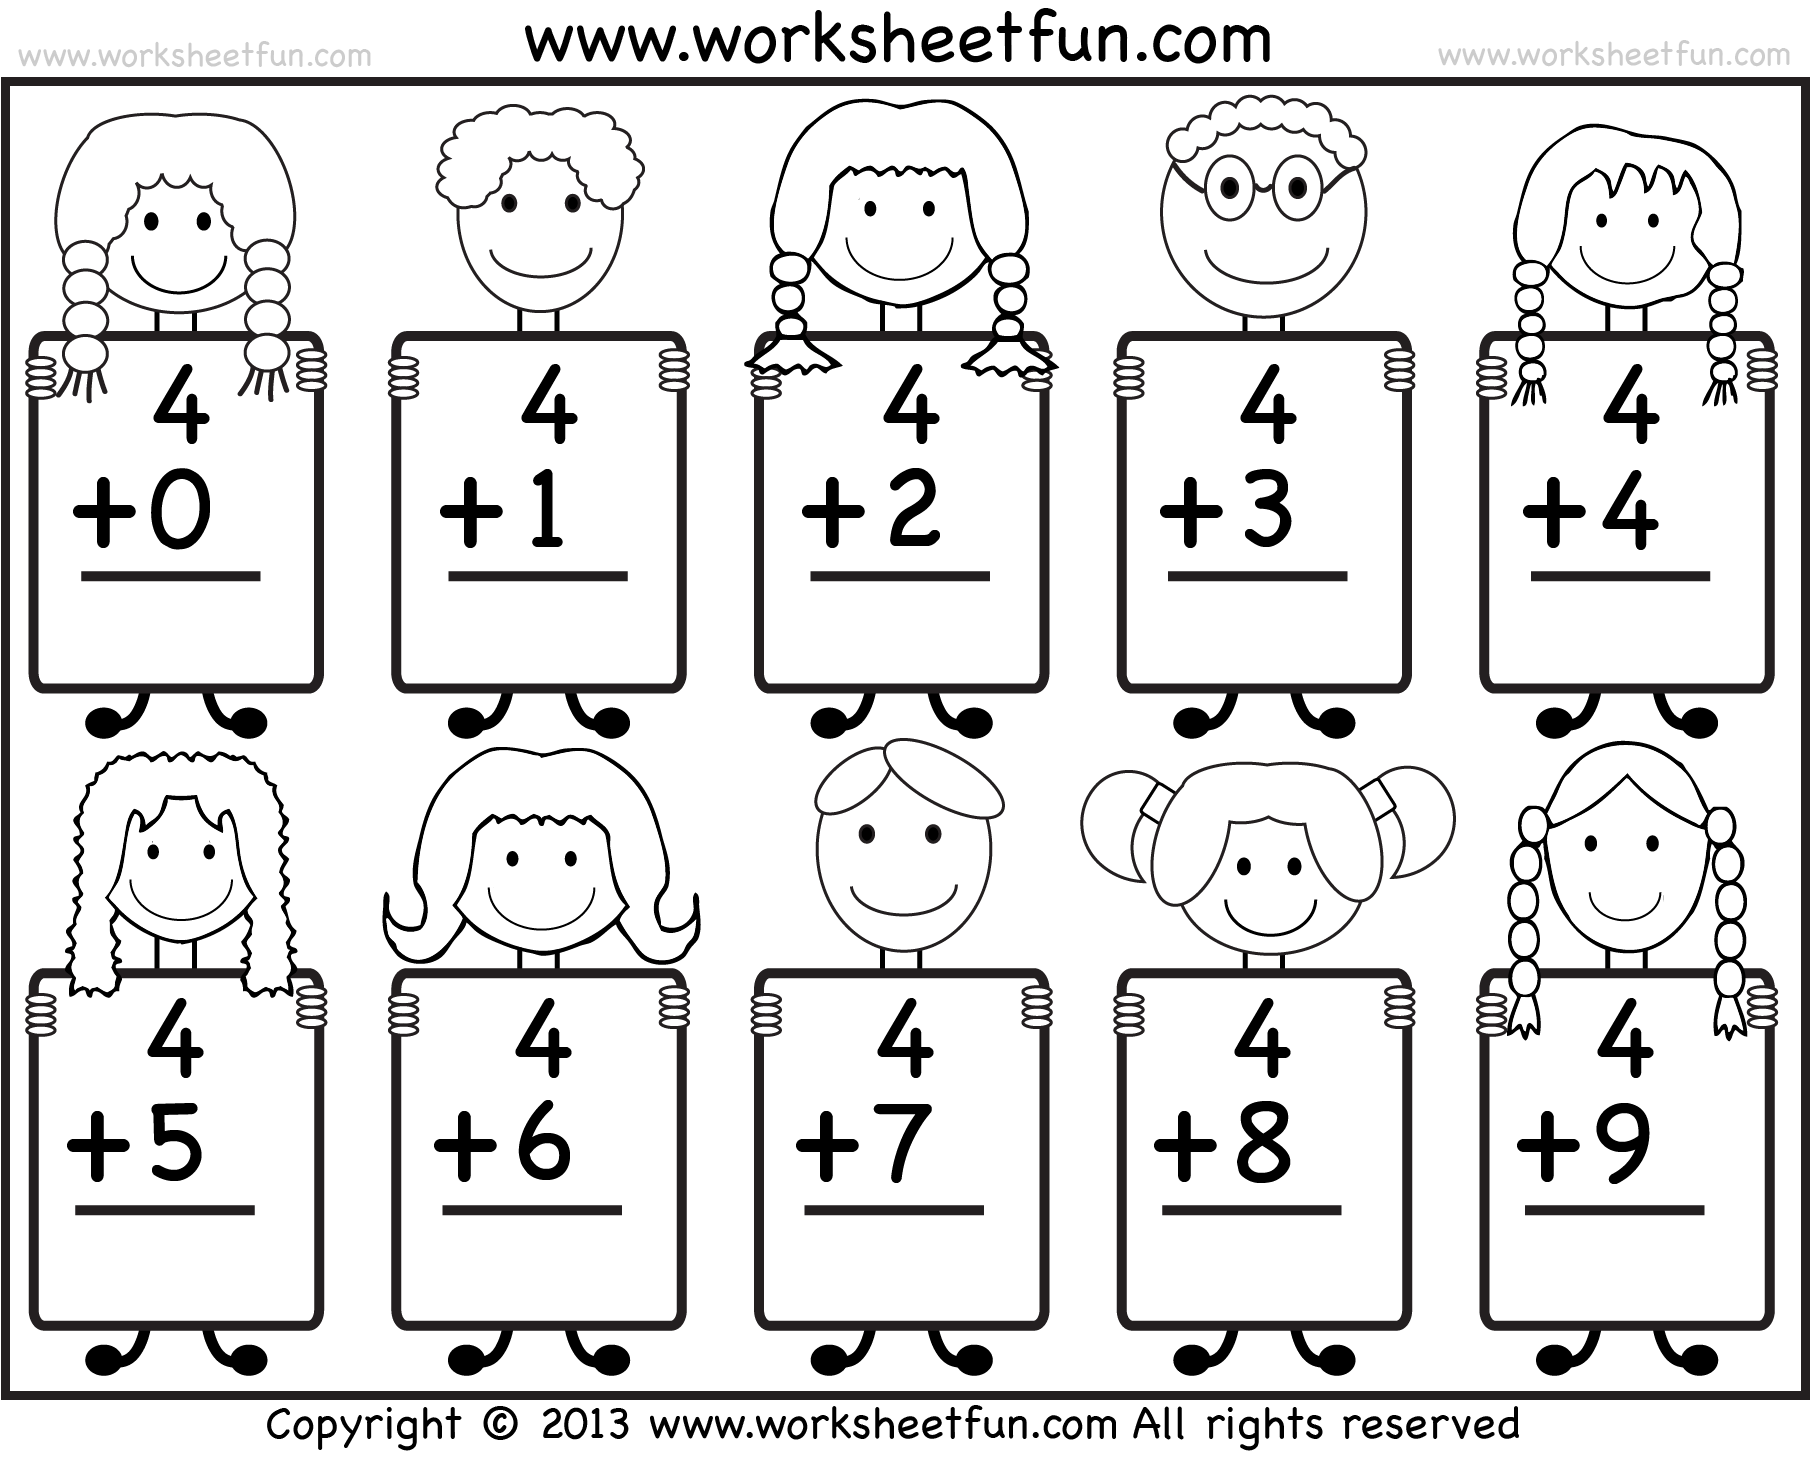 Printables Kg Math Worksheets kindergarten math printable worksheets one less 9